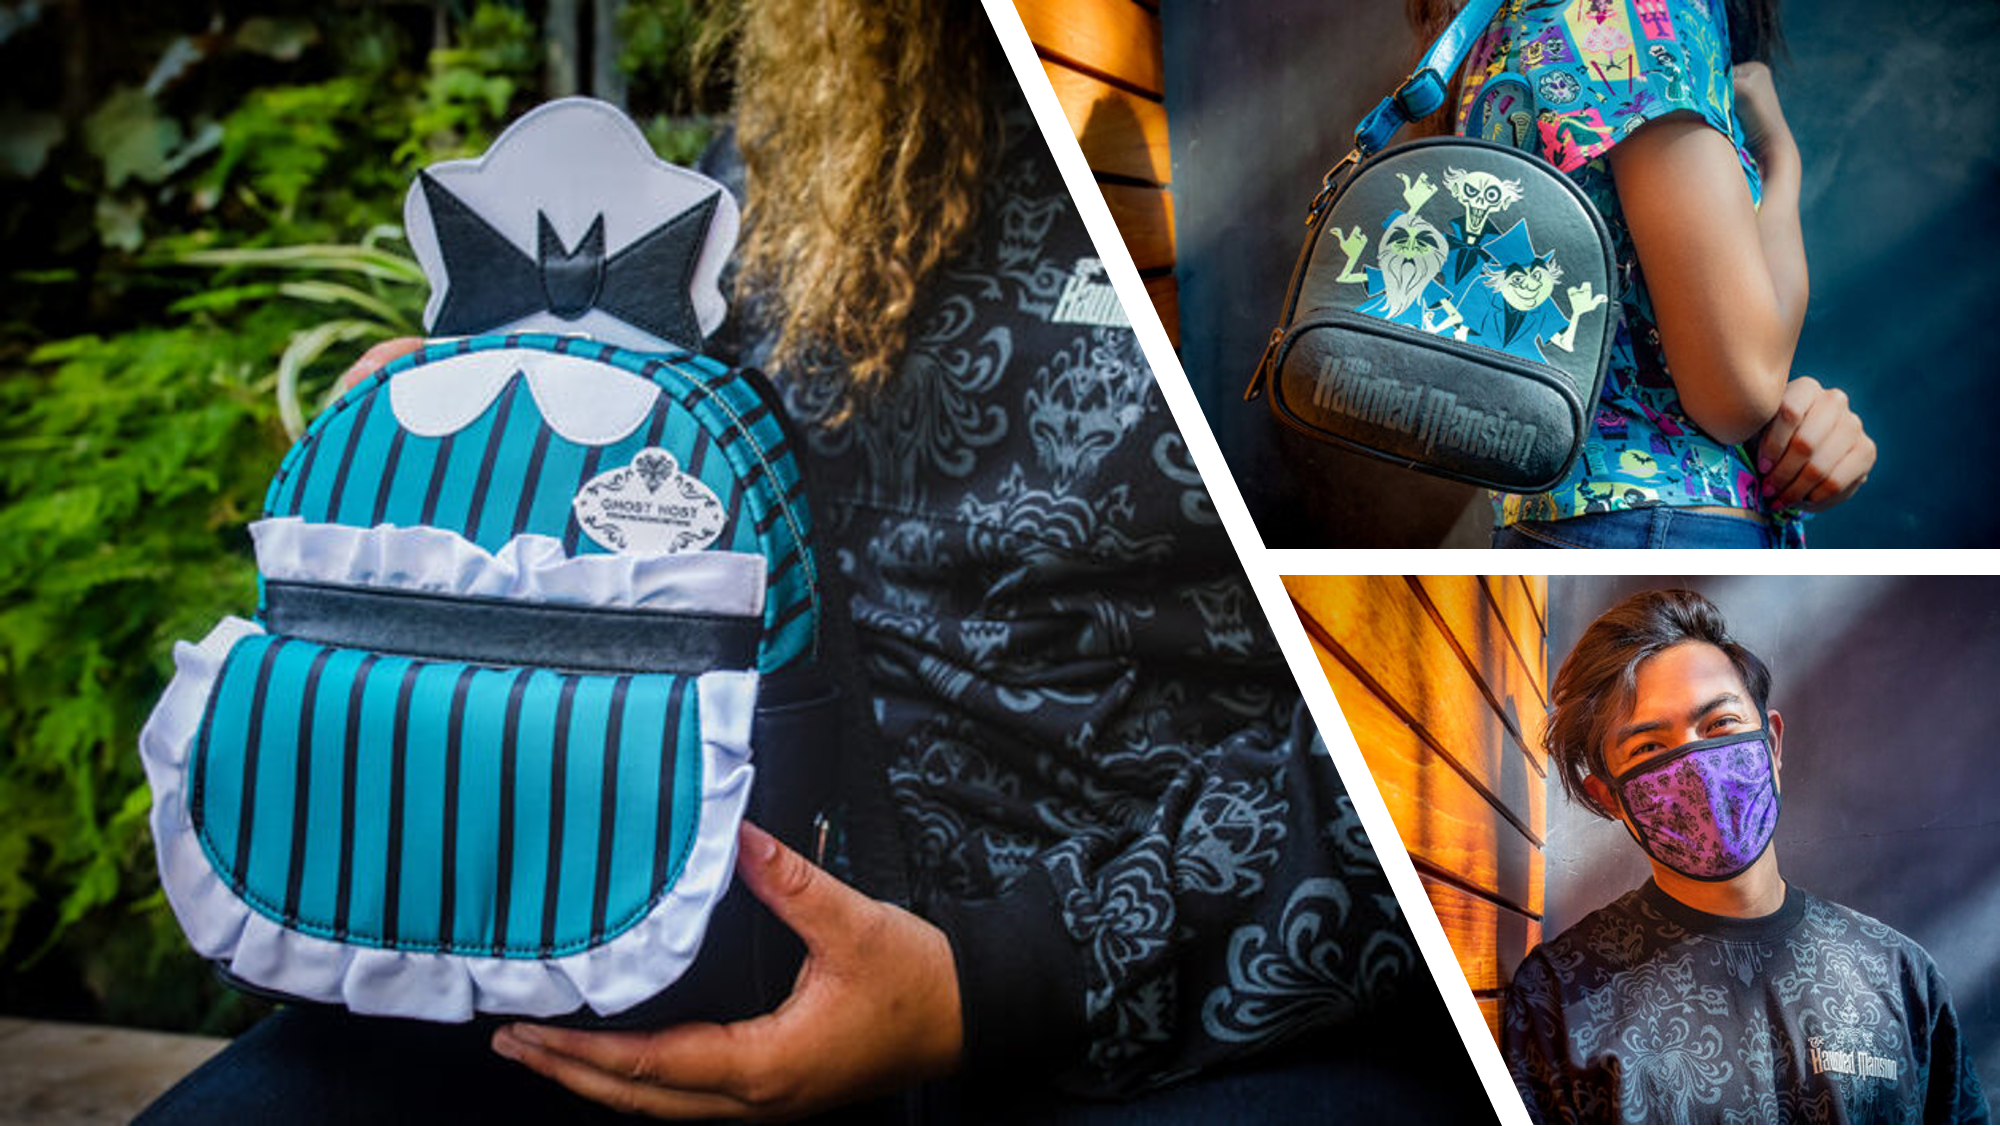 Haunted Mansion themed merchandise from Disney